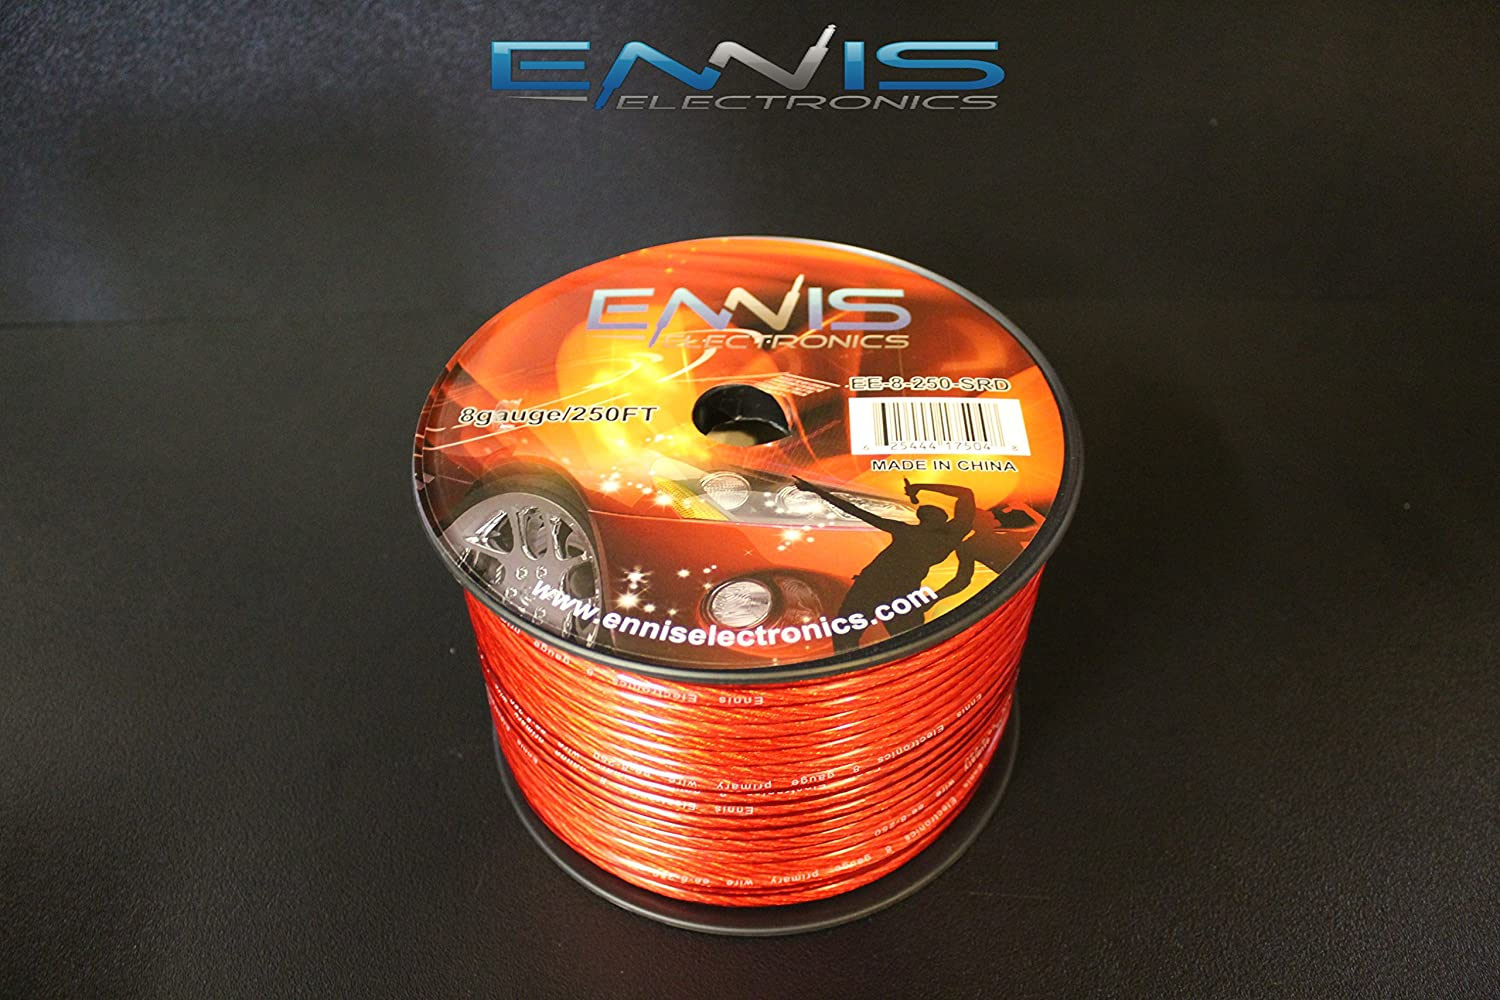 8 GAUGE WIRE 250 FT RED AWG CABLE ENNIS ELECTRONICS POWER GROUND STRANDED CAR